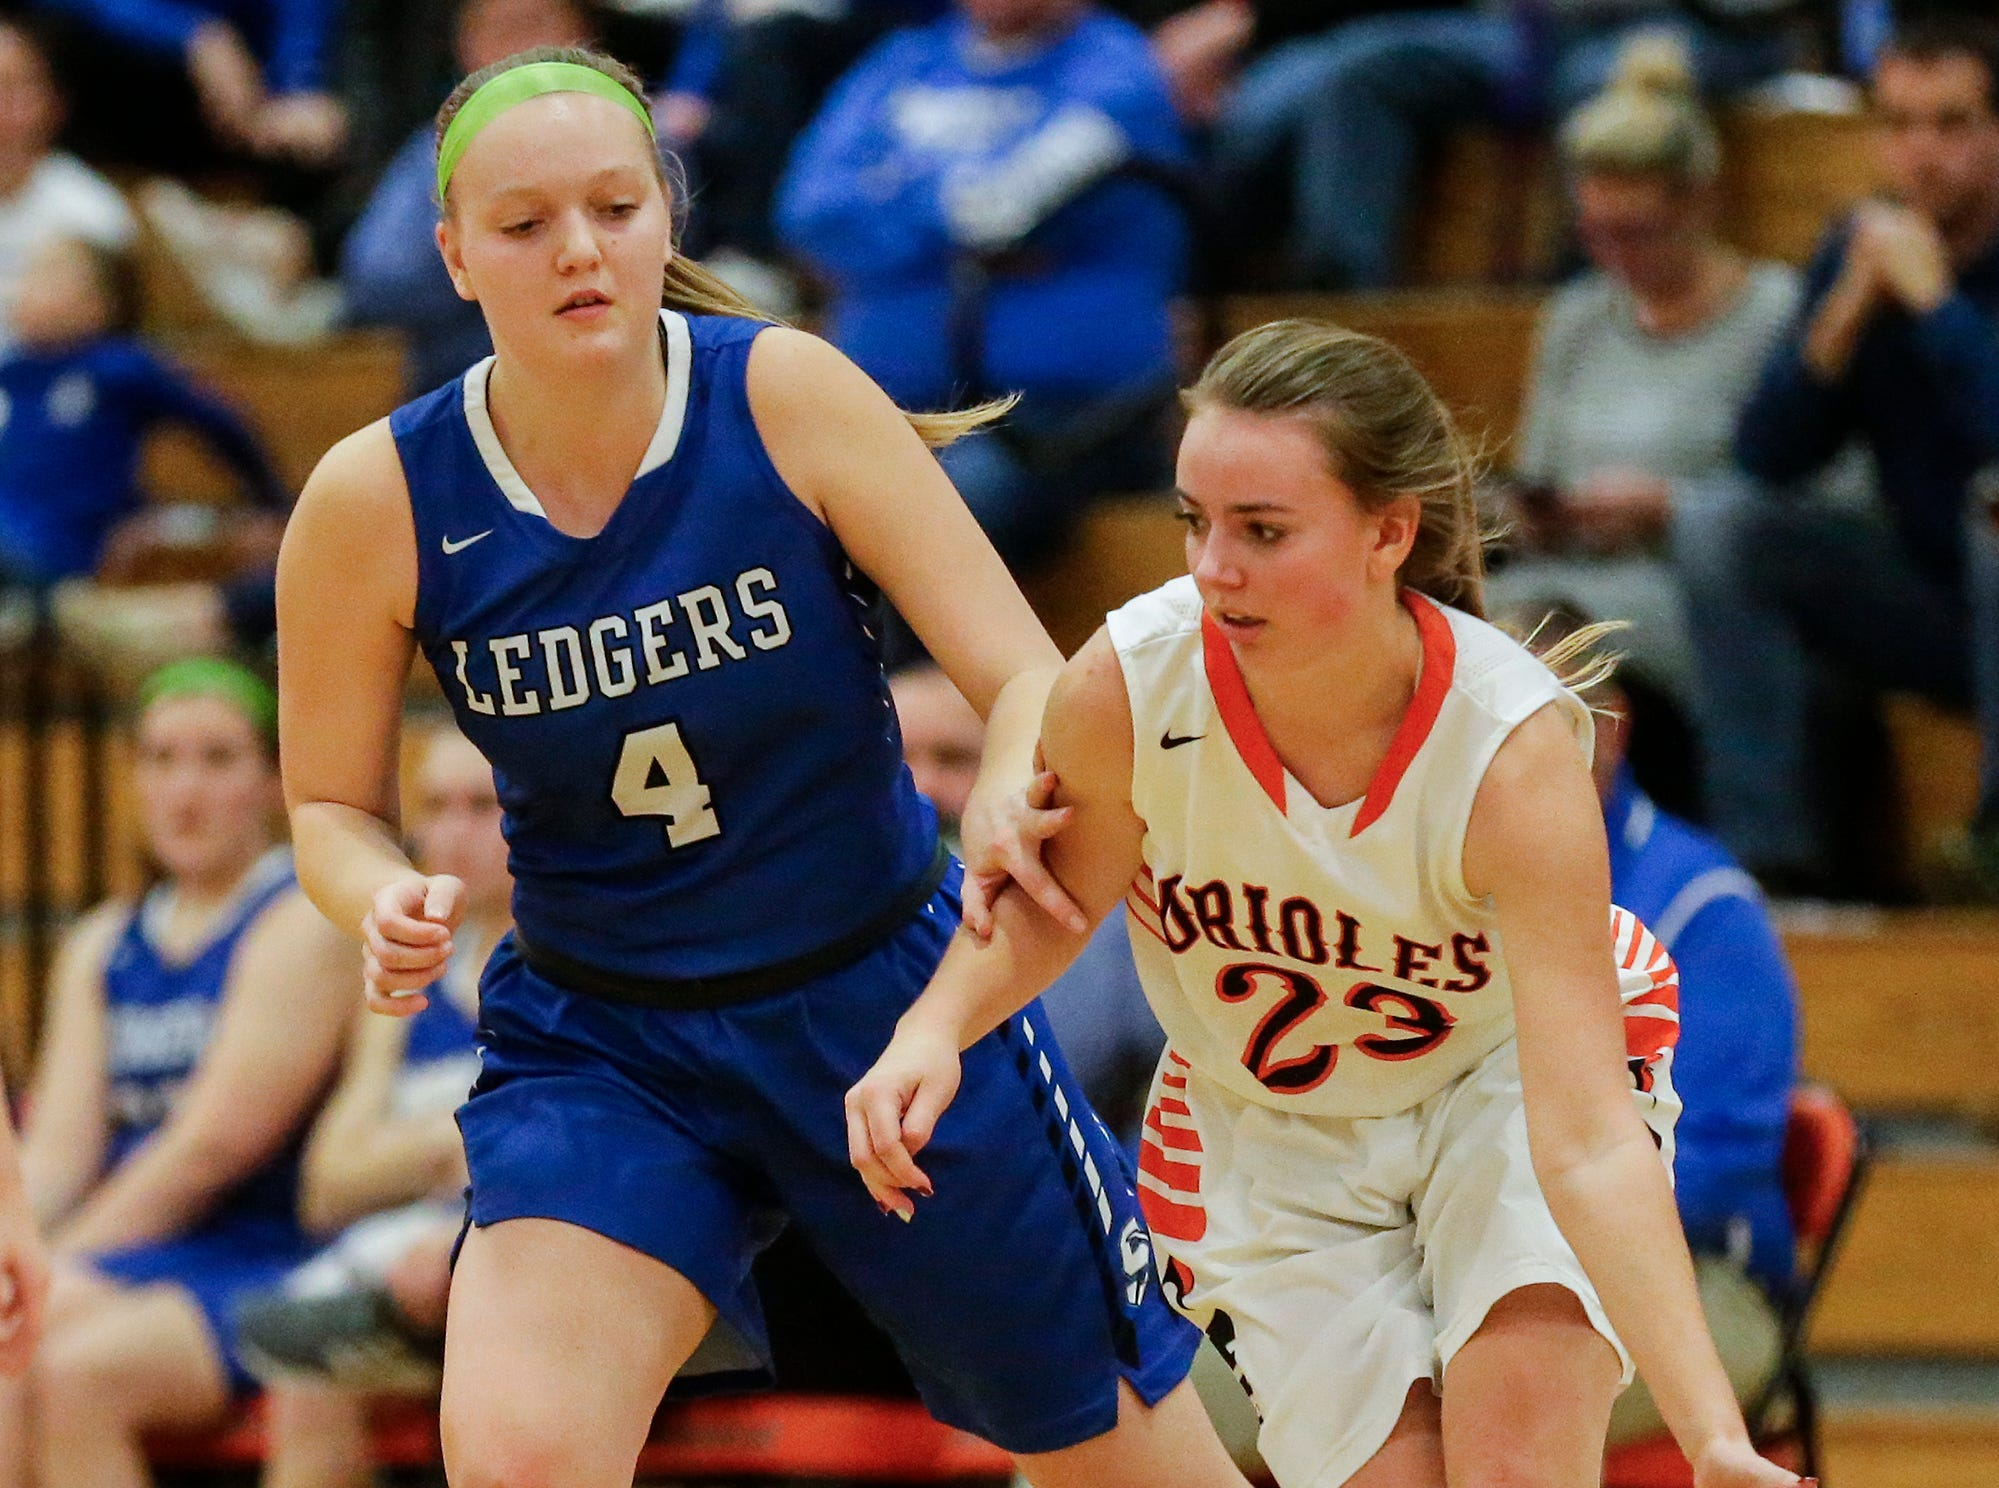 North Fond du Lac High School girls basketball's Jordyn Stettbacher moves the ball past St. Mary's Springs Academy;'s Brianna Freund during their game Friday, January 4, 2019 in North Fond du lac. Doug Raflik/USA TODAY NETWORK-Wisconsin